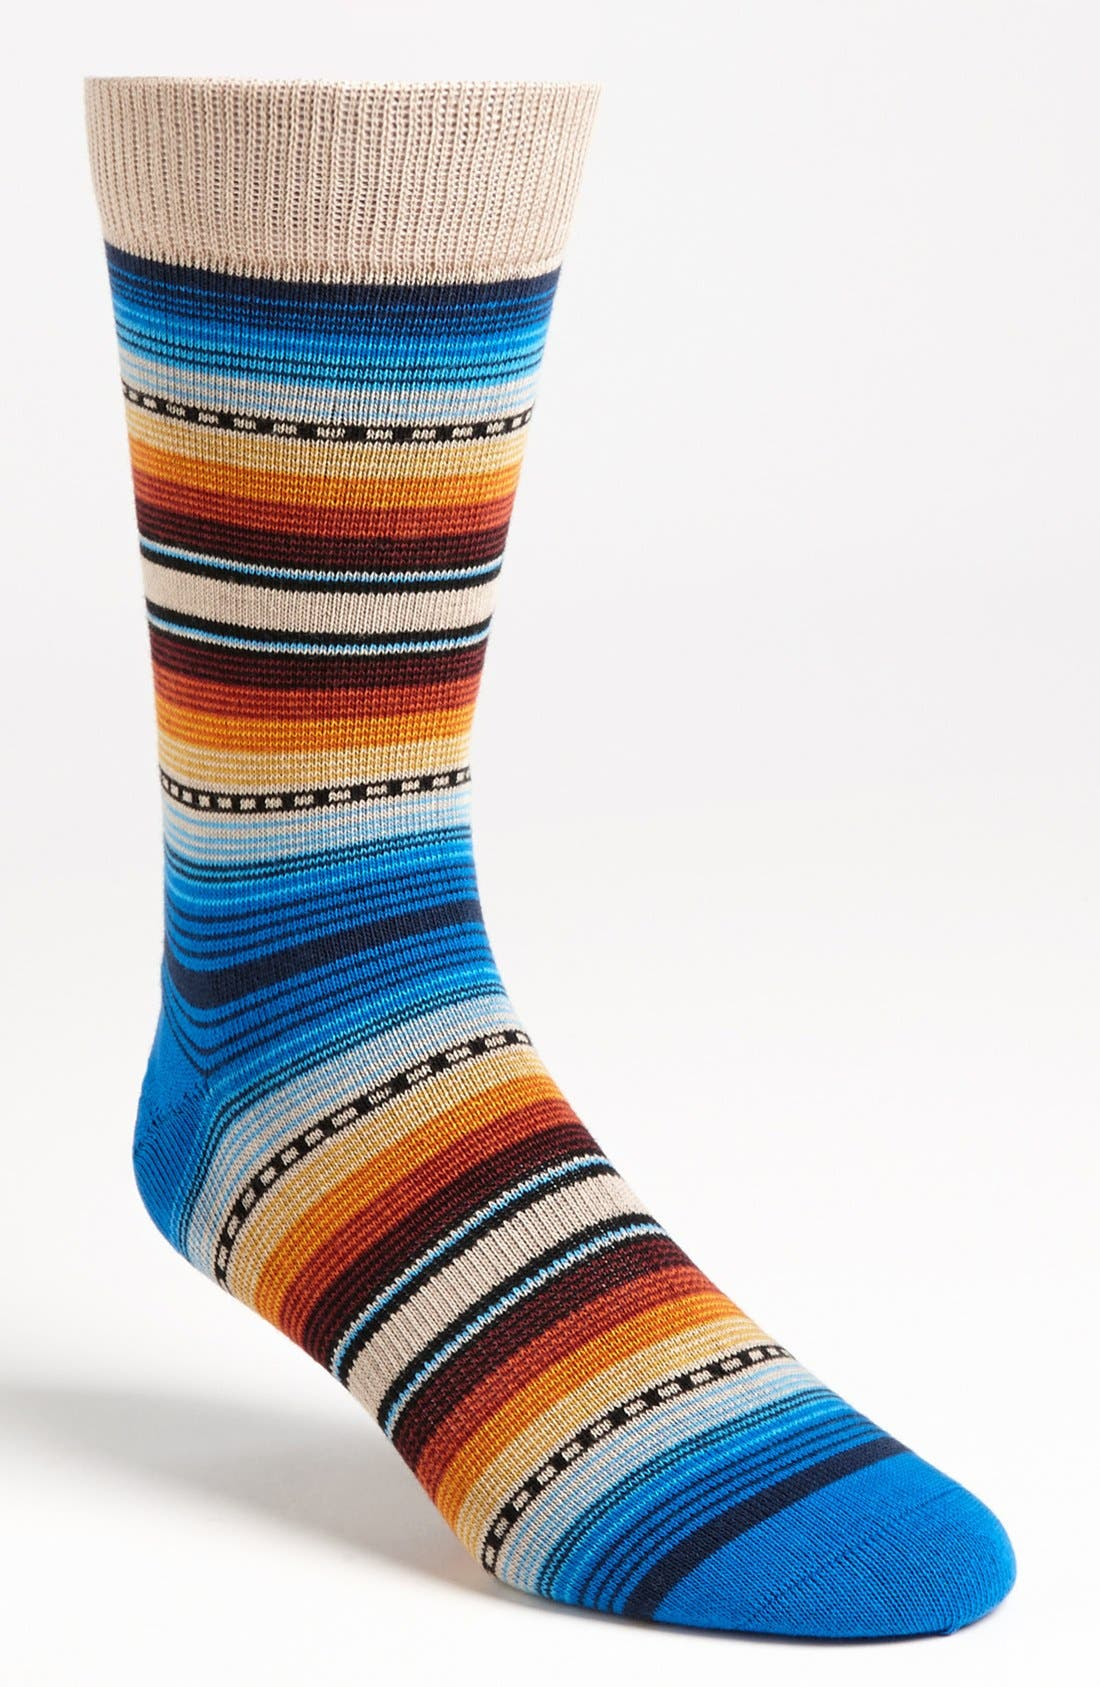 Alternate Image 1 Selected - Stance 'José Ramos' Socks